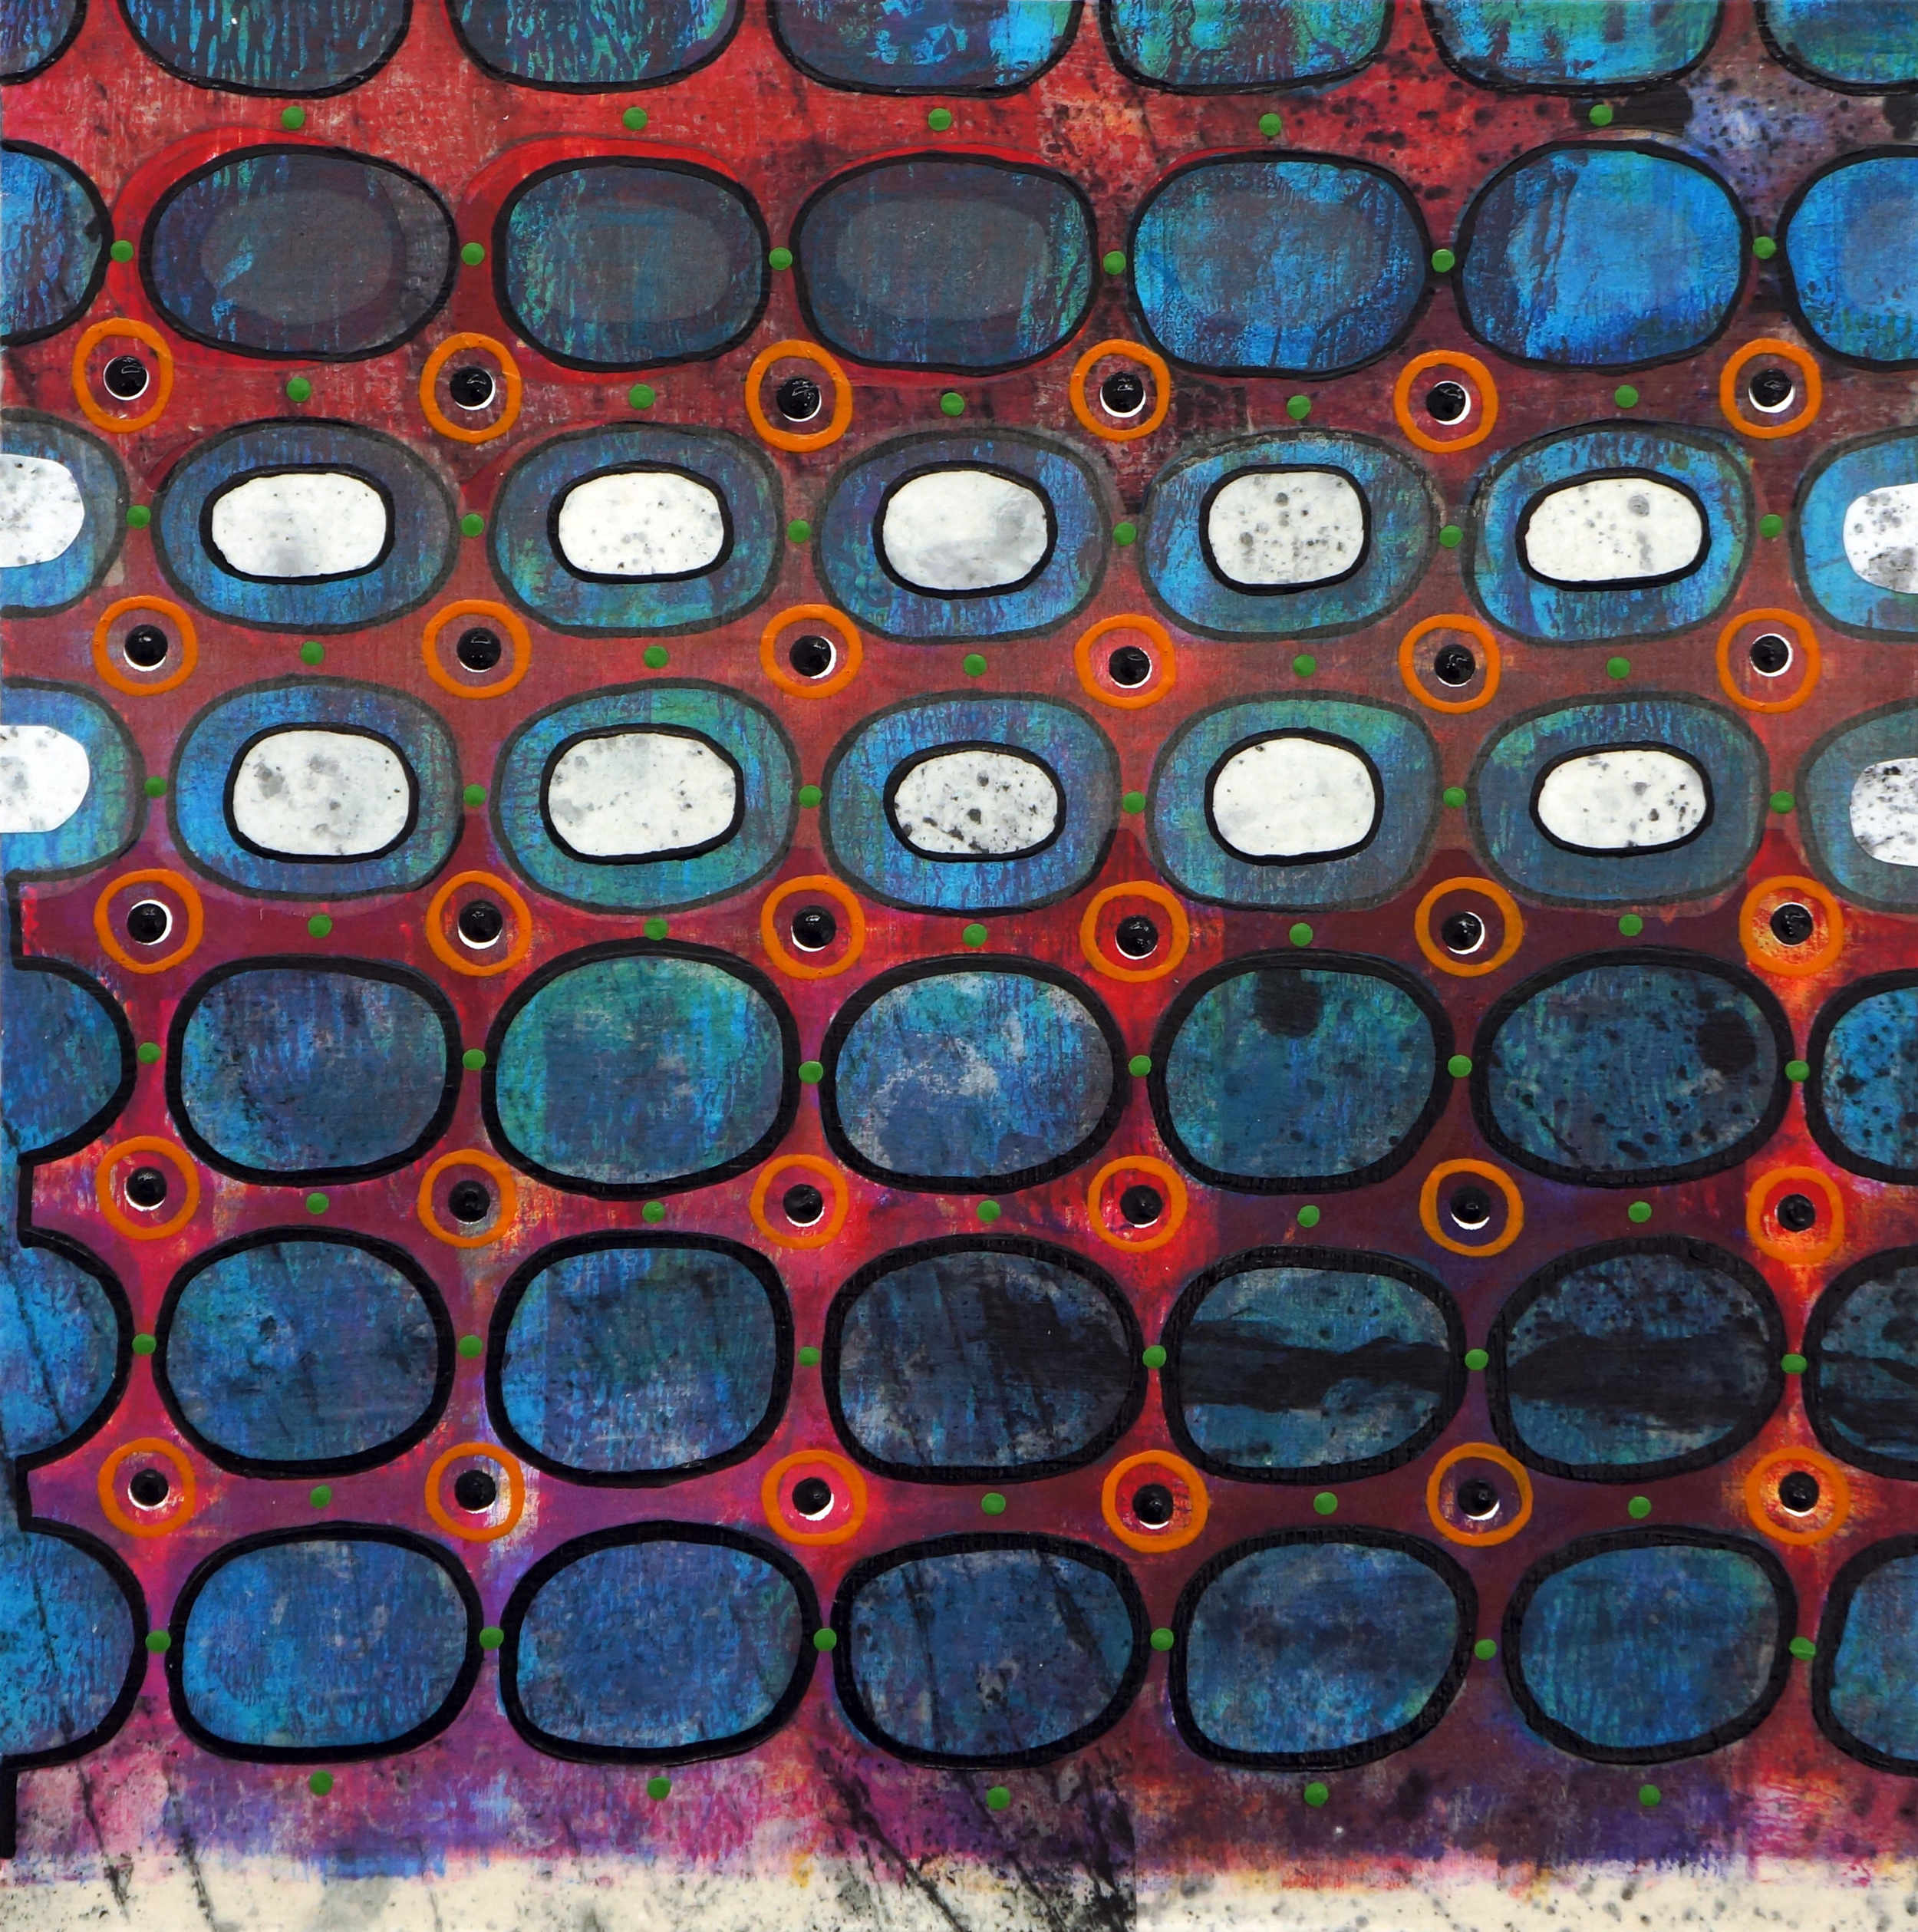 Jeanne Williamson , Bubbles and Cracks on Ice on Fences #1 , mixed media on cradled board, 14x14